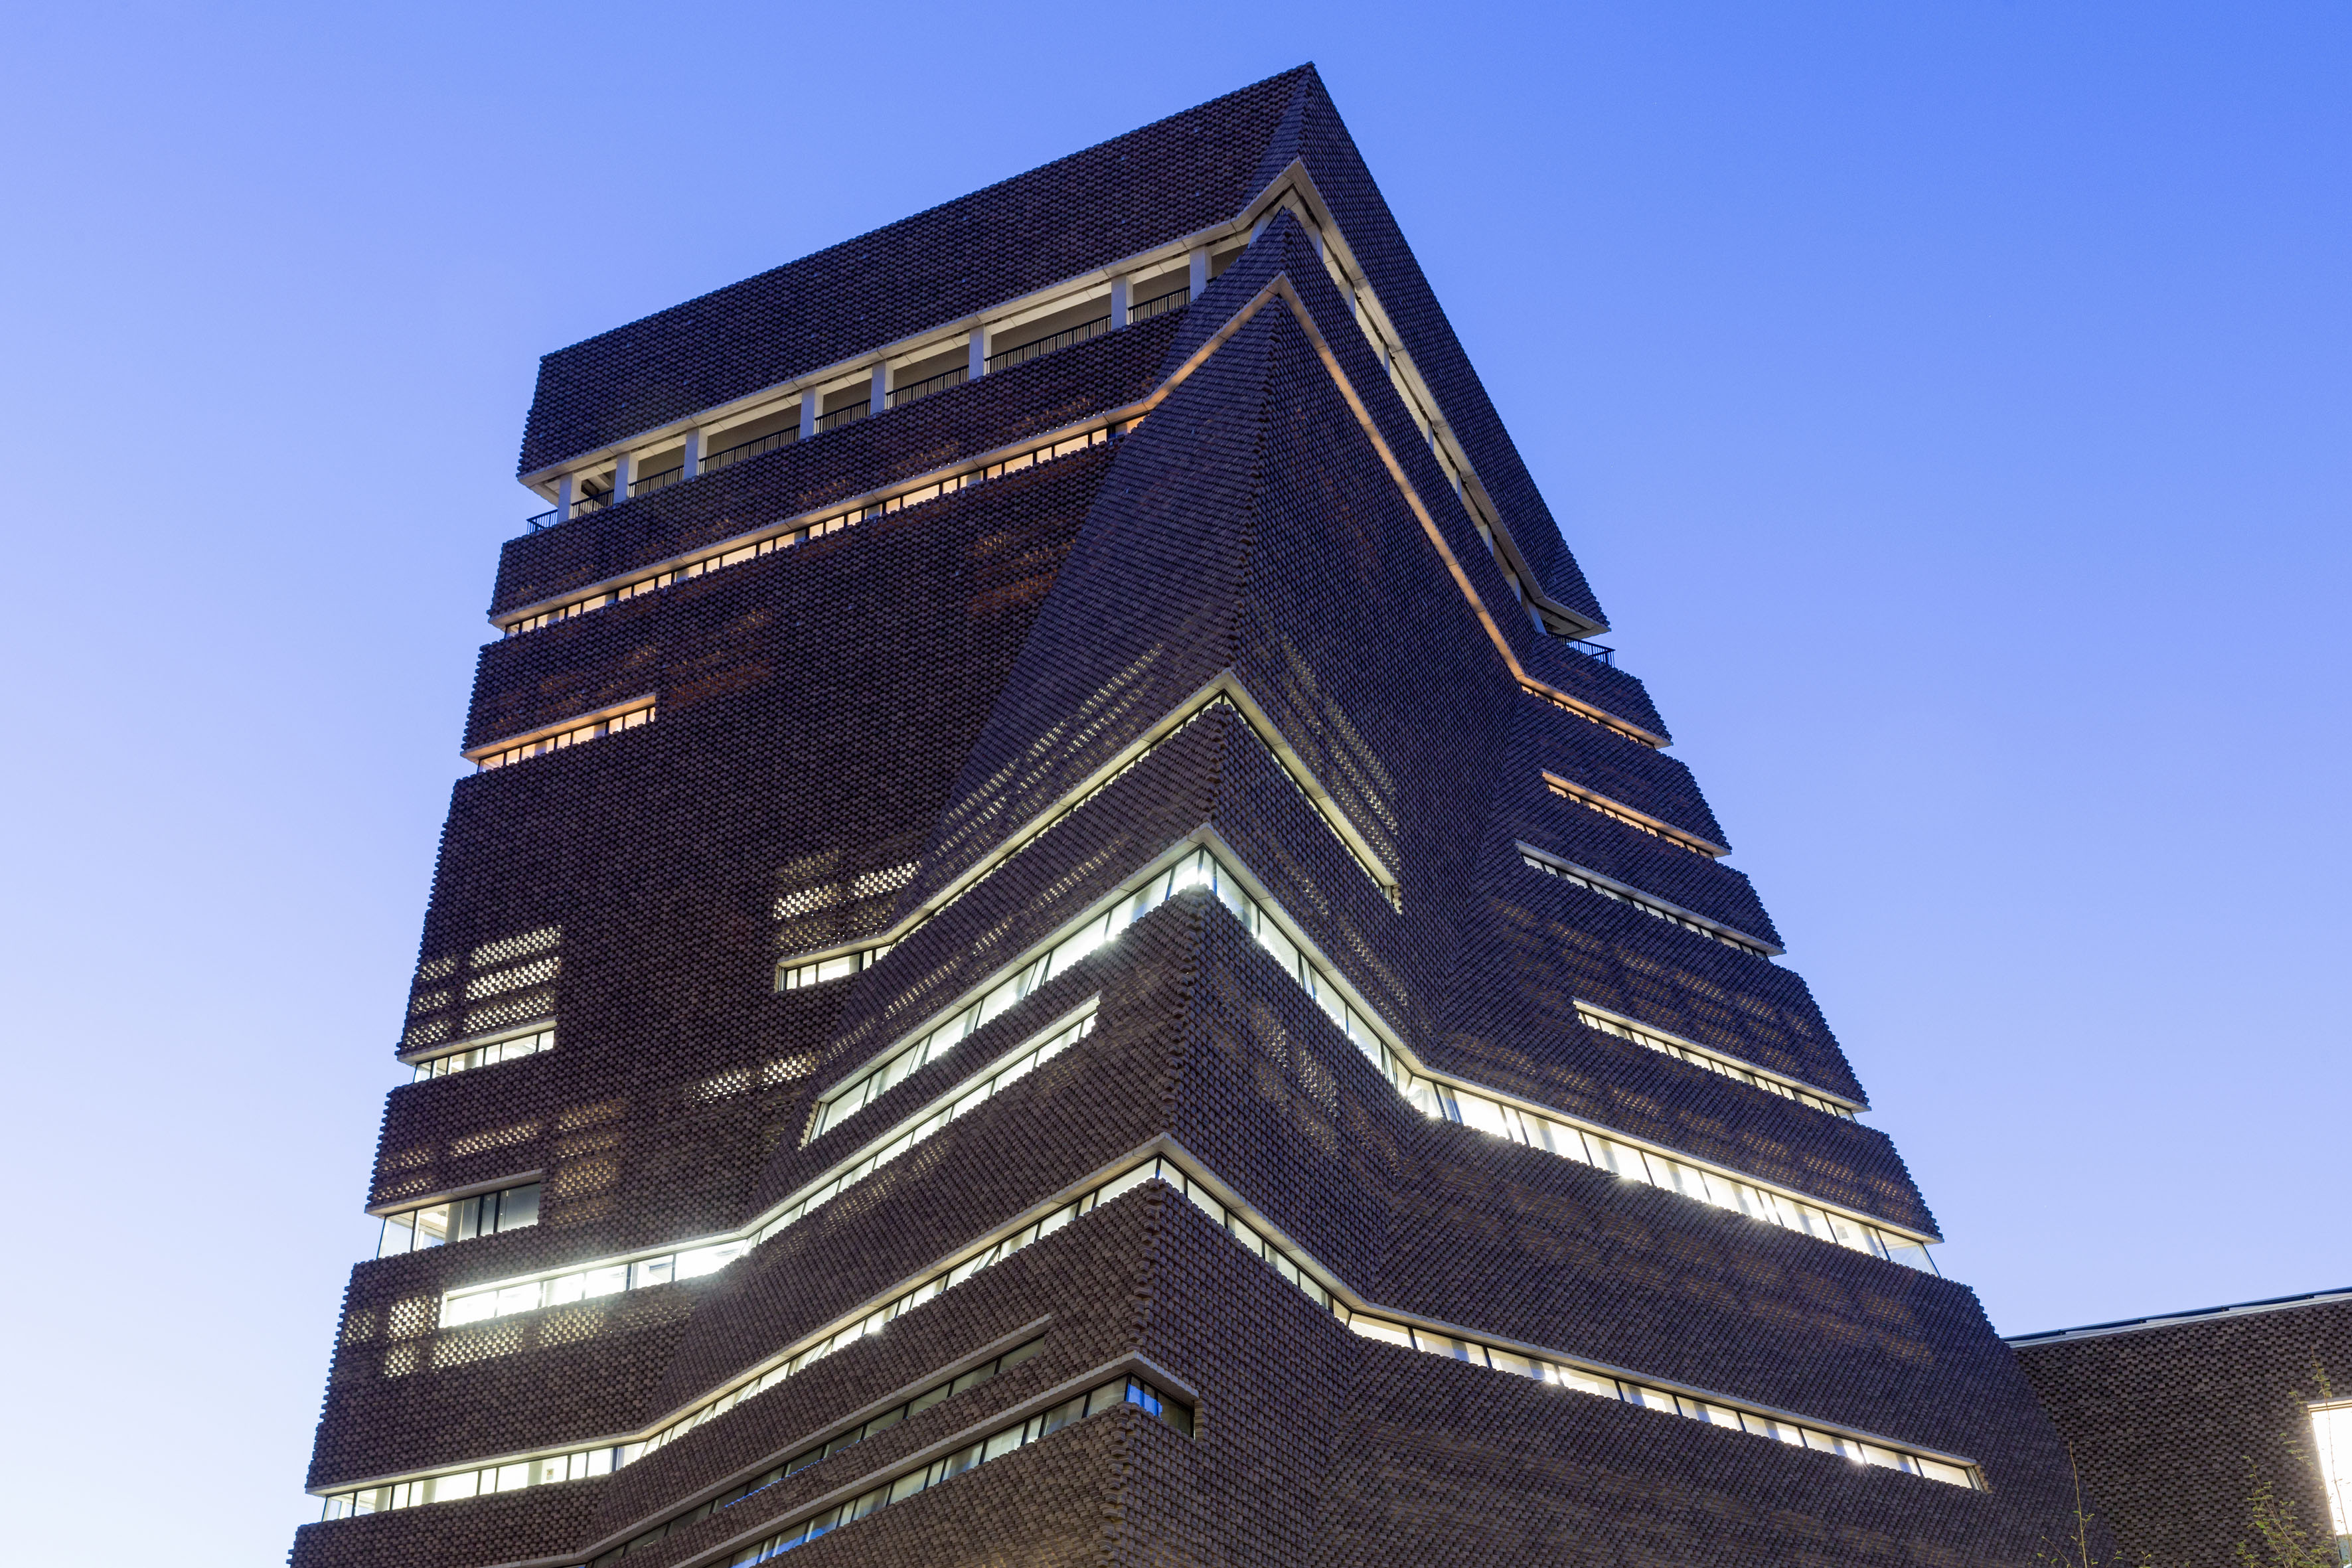 Tate Modern's new extension